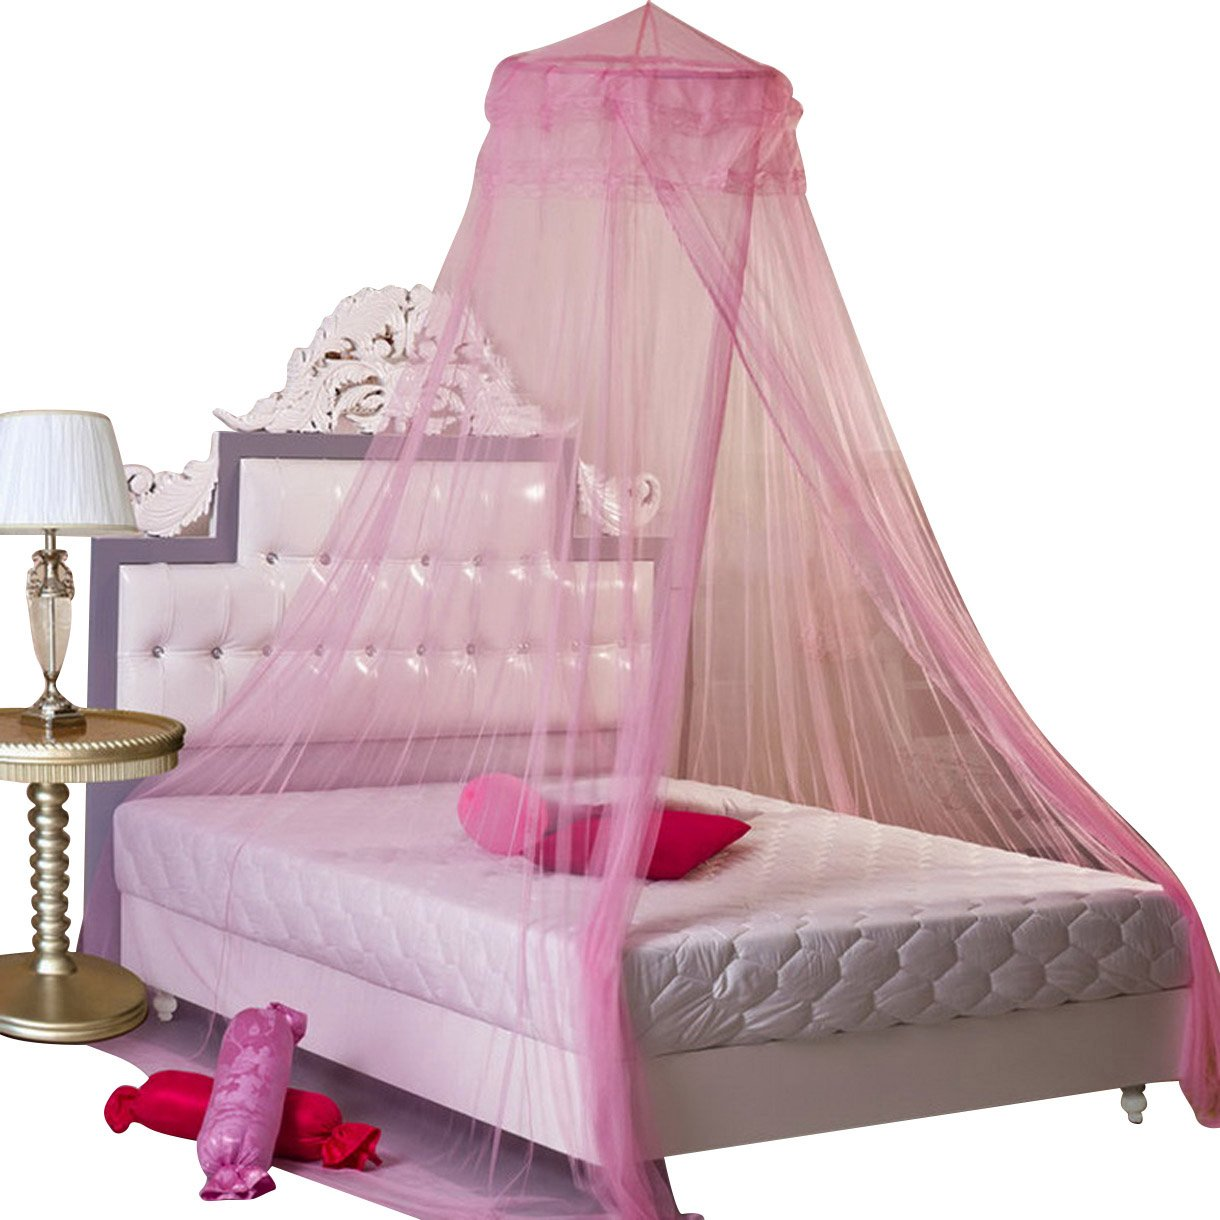 New Round Lace Curtain Dome Bed Canopy Netting Princess